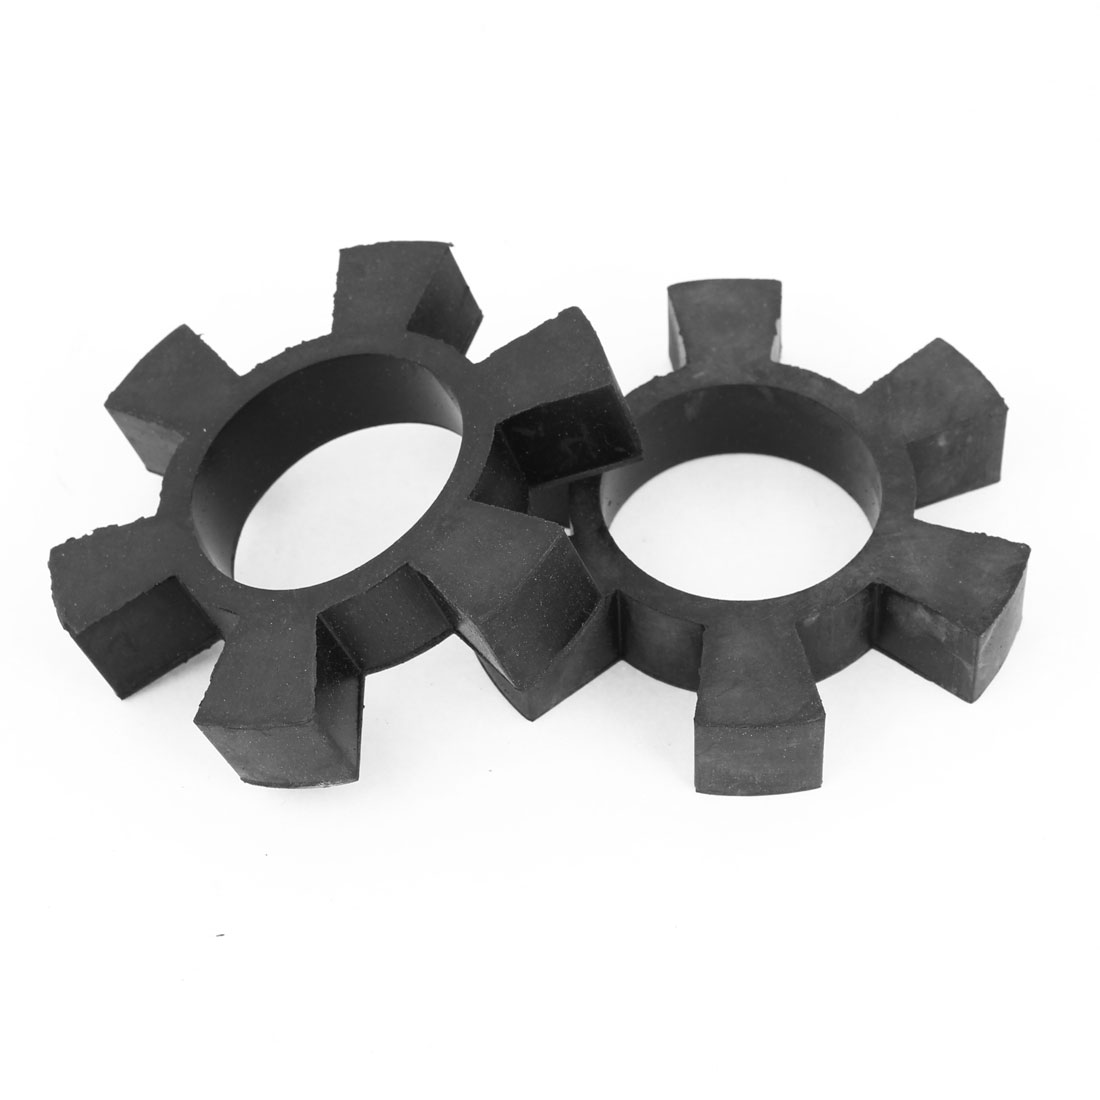 2 Pcs Black 6 Petals Rubber Engine Damper Coupling Insert Spider 3.7""